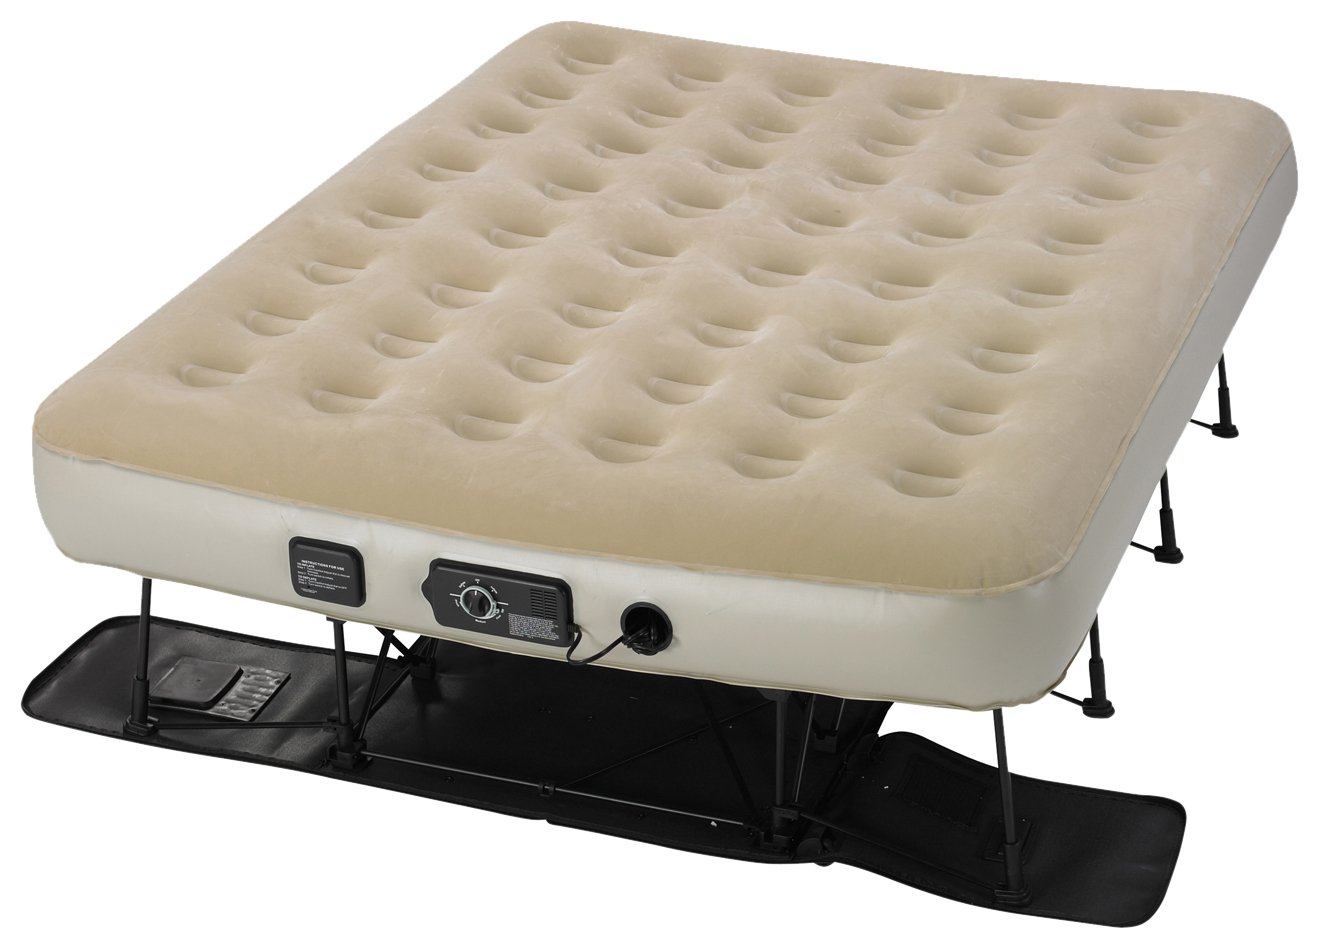 The Serta EZ Bed